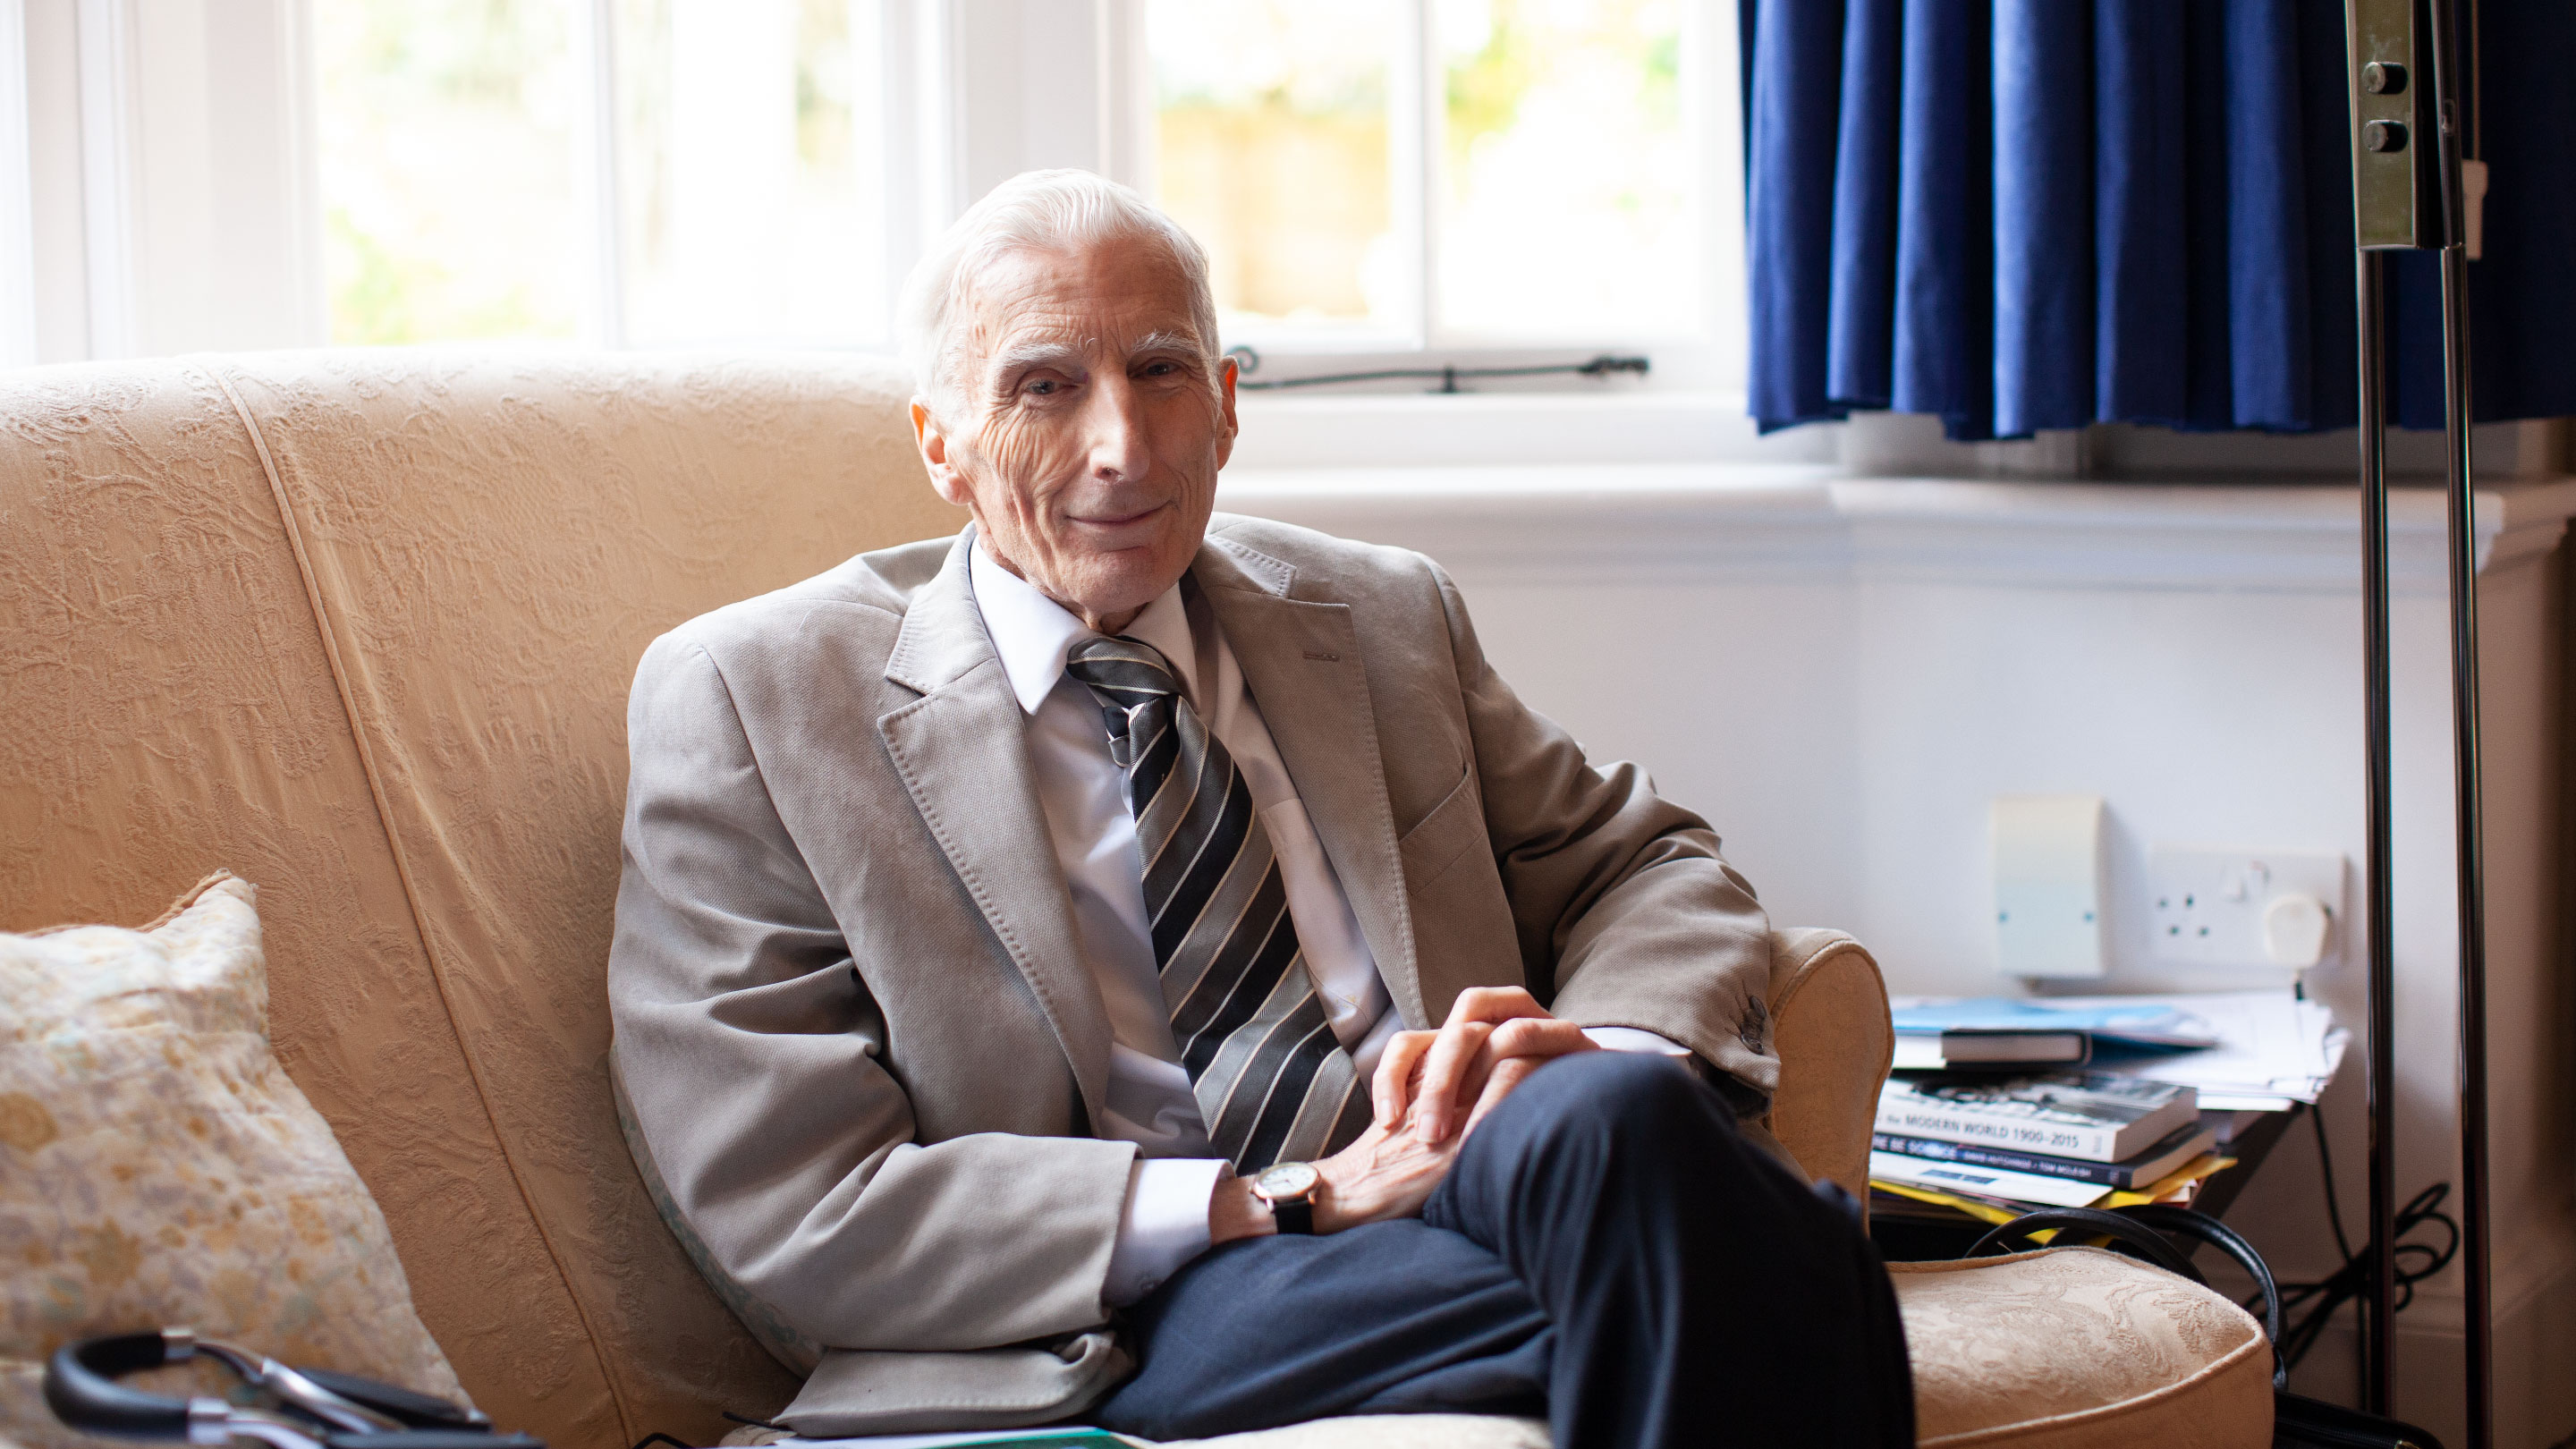 Martin Rees, Baron Rees of Ludlow, at his home in Cambridge, England.